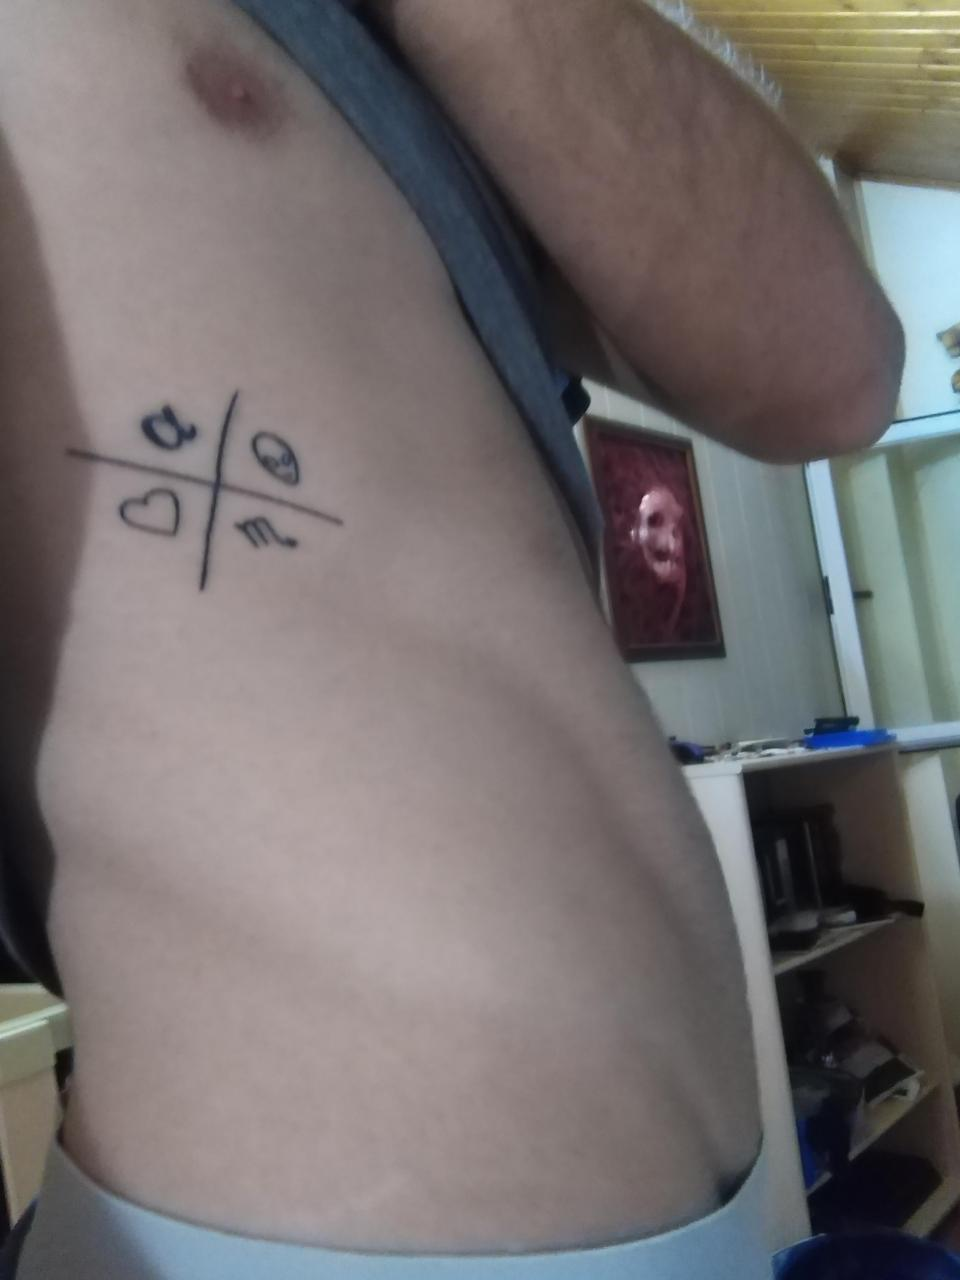 Done in Meridian Tattoo, Ponferrada, Spain. Does this kind of symbol has a name? I bet u seen it in many ways